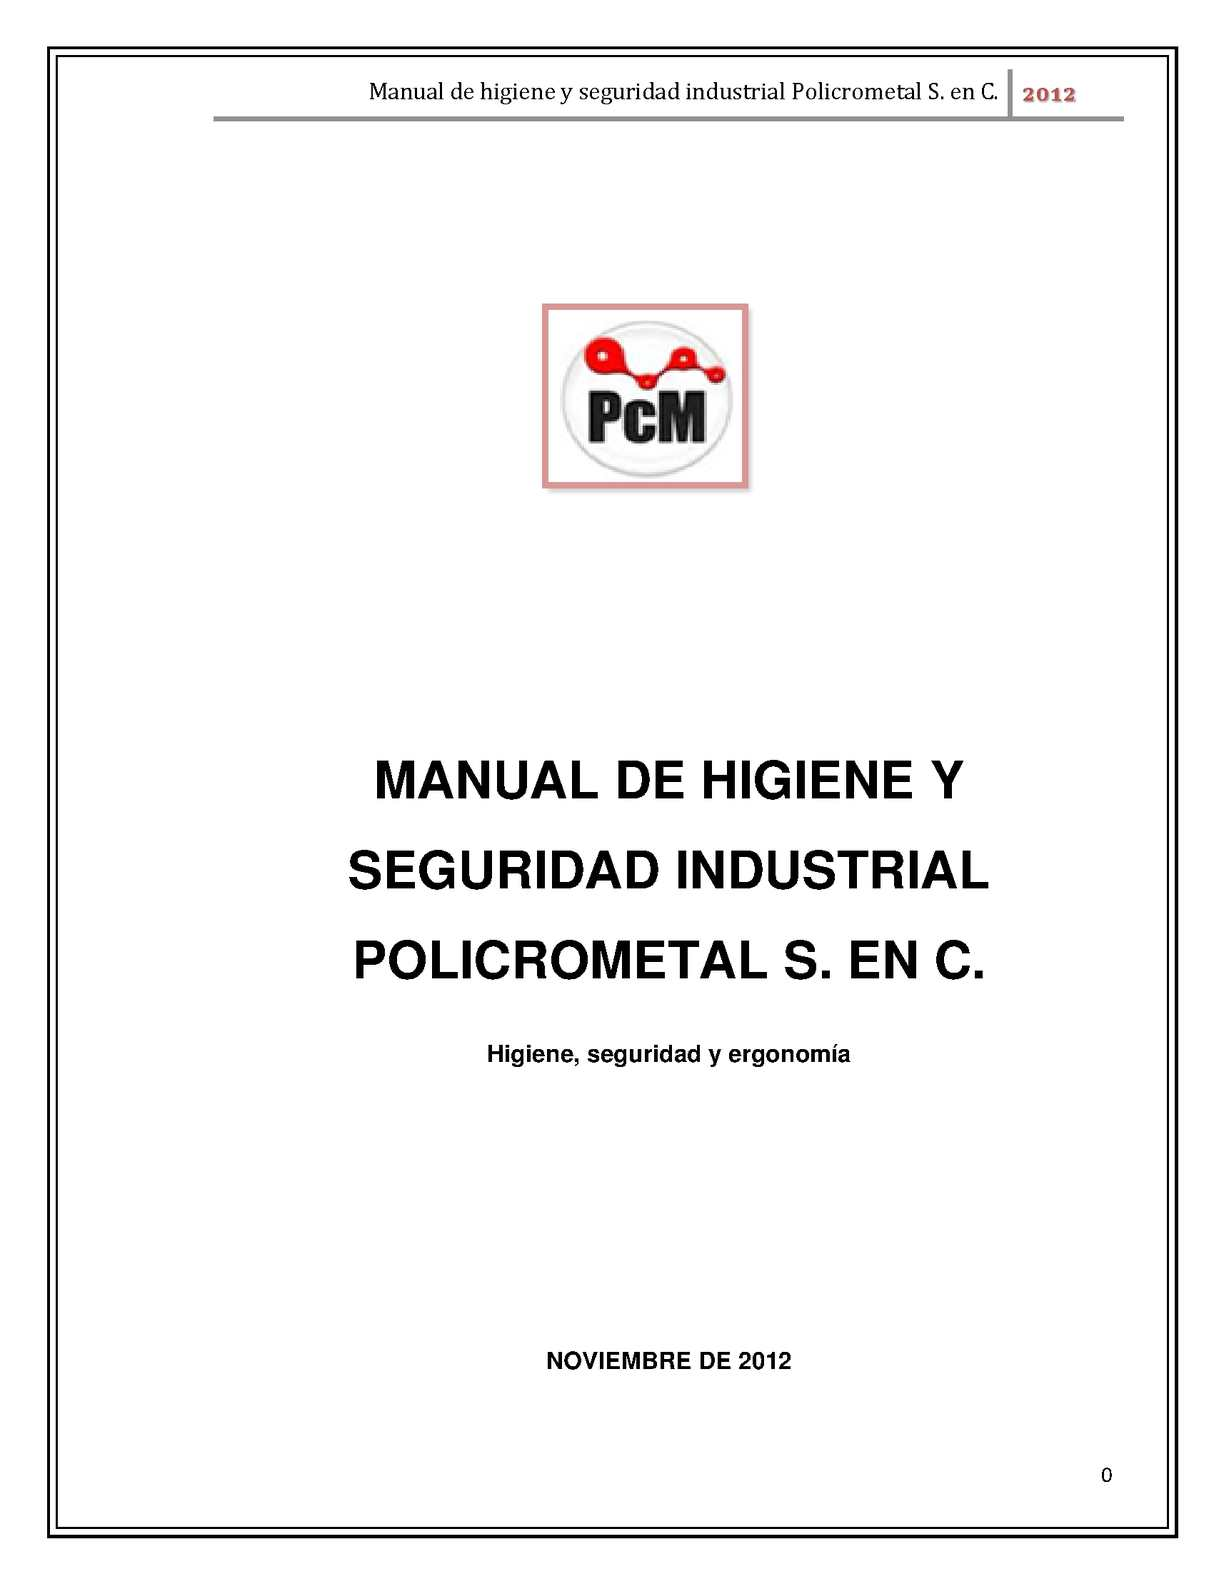 Calam o manual de higiene y seguridad for Manual de acuicultura pdf